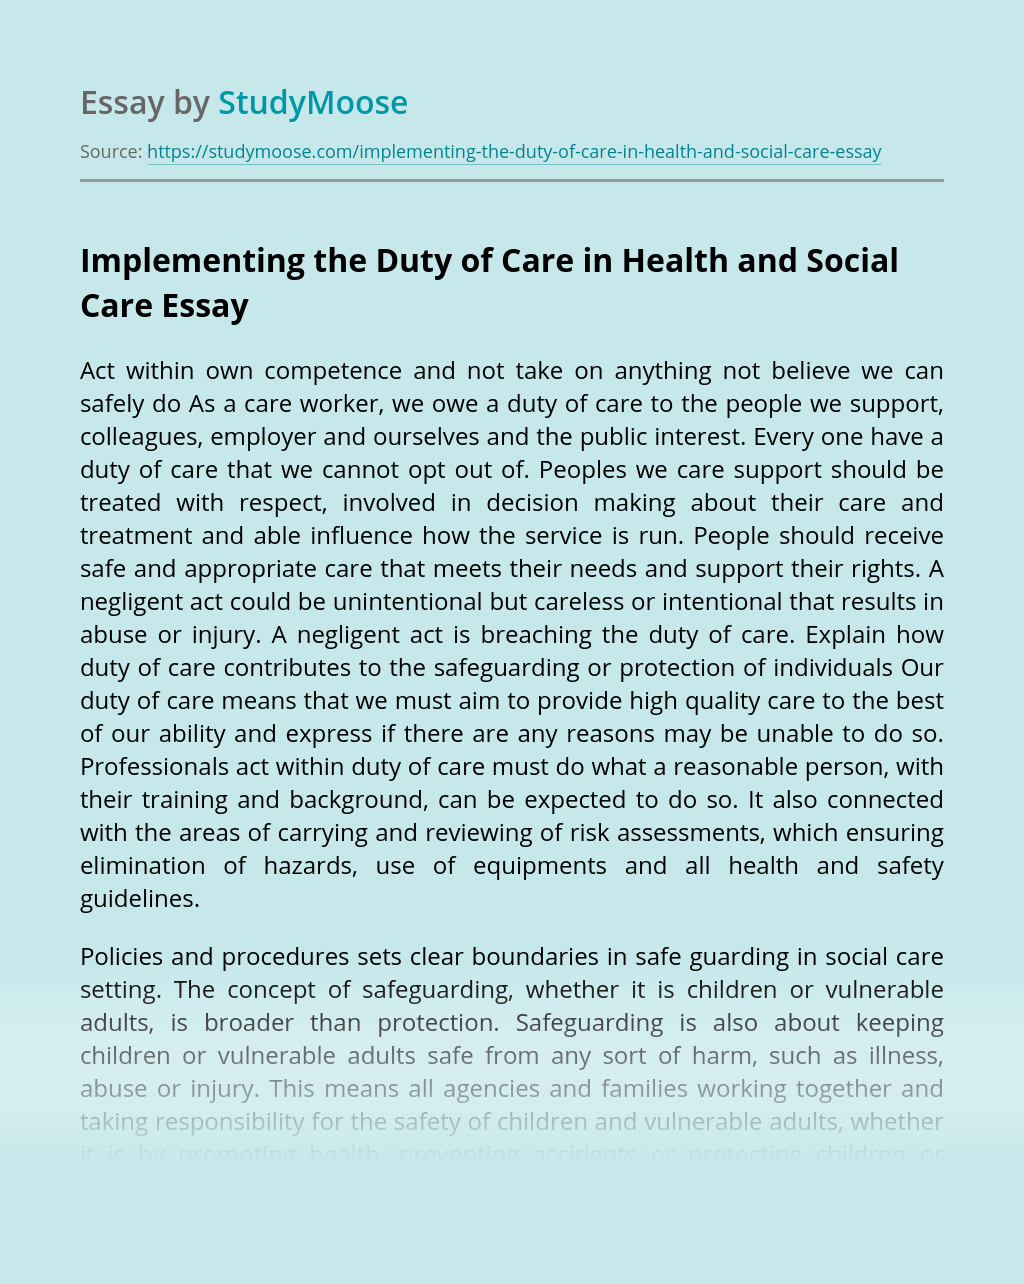 Implementing the Duty of Care in Health and Social Care